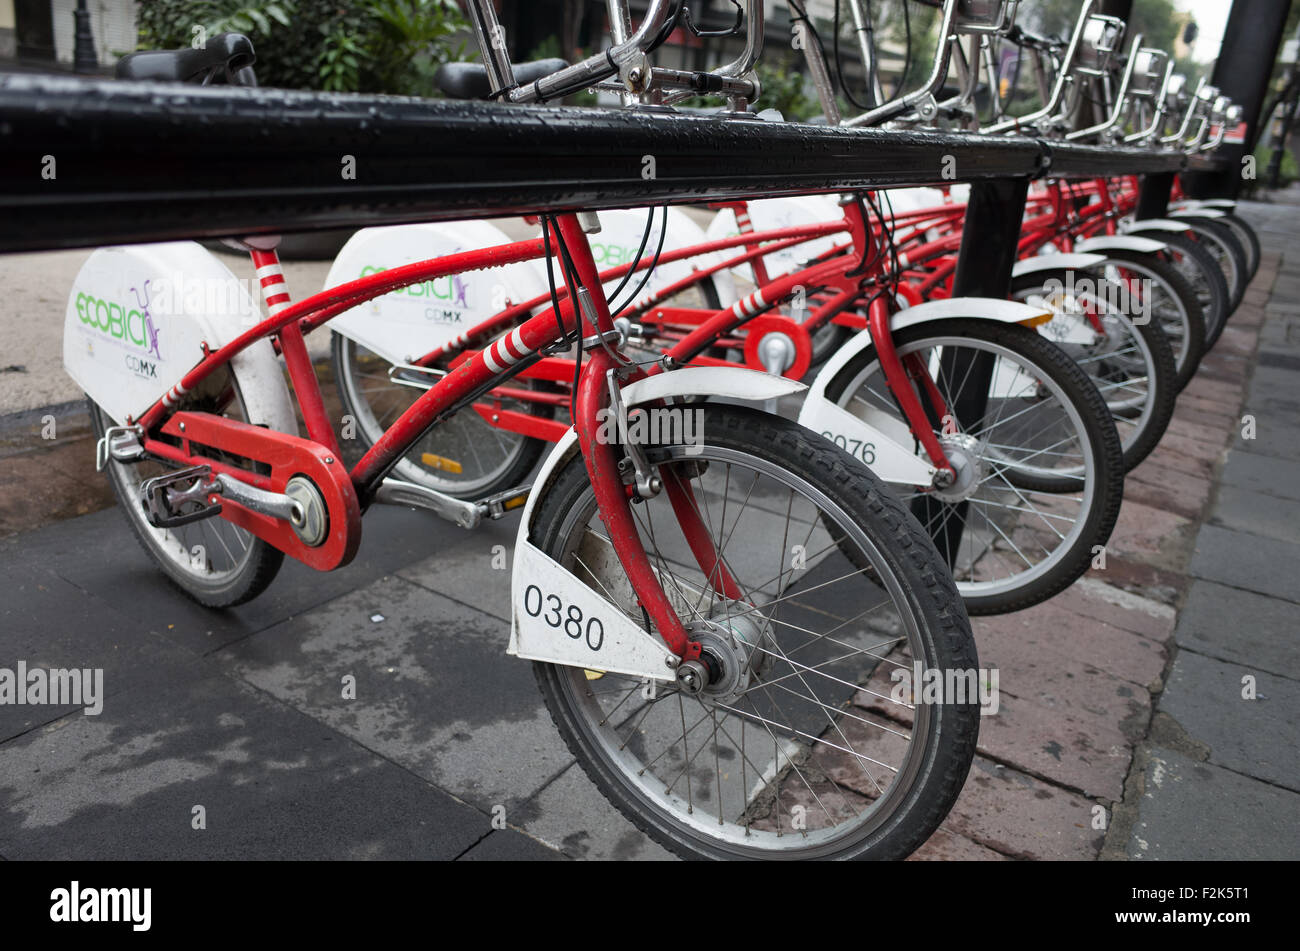 Red bikes on a bikesharing rack in Mexico City, Mexico. - Stock Image